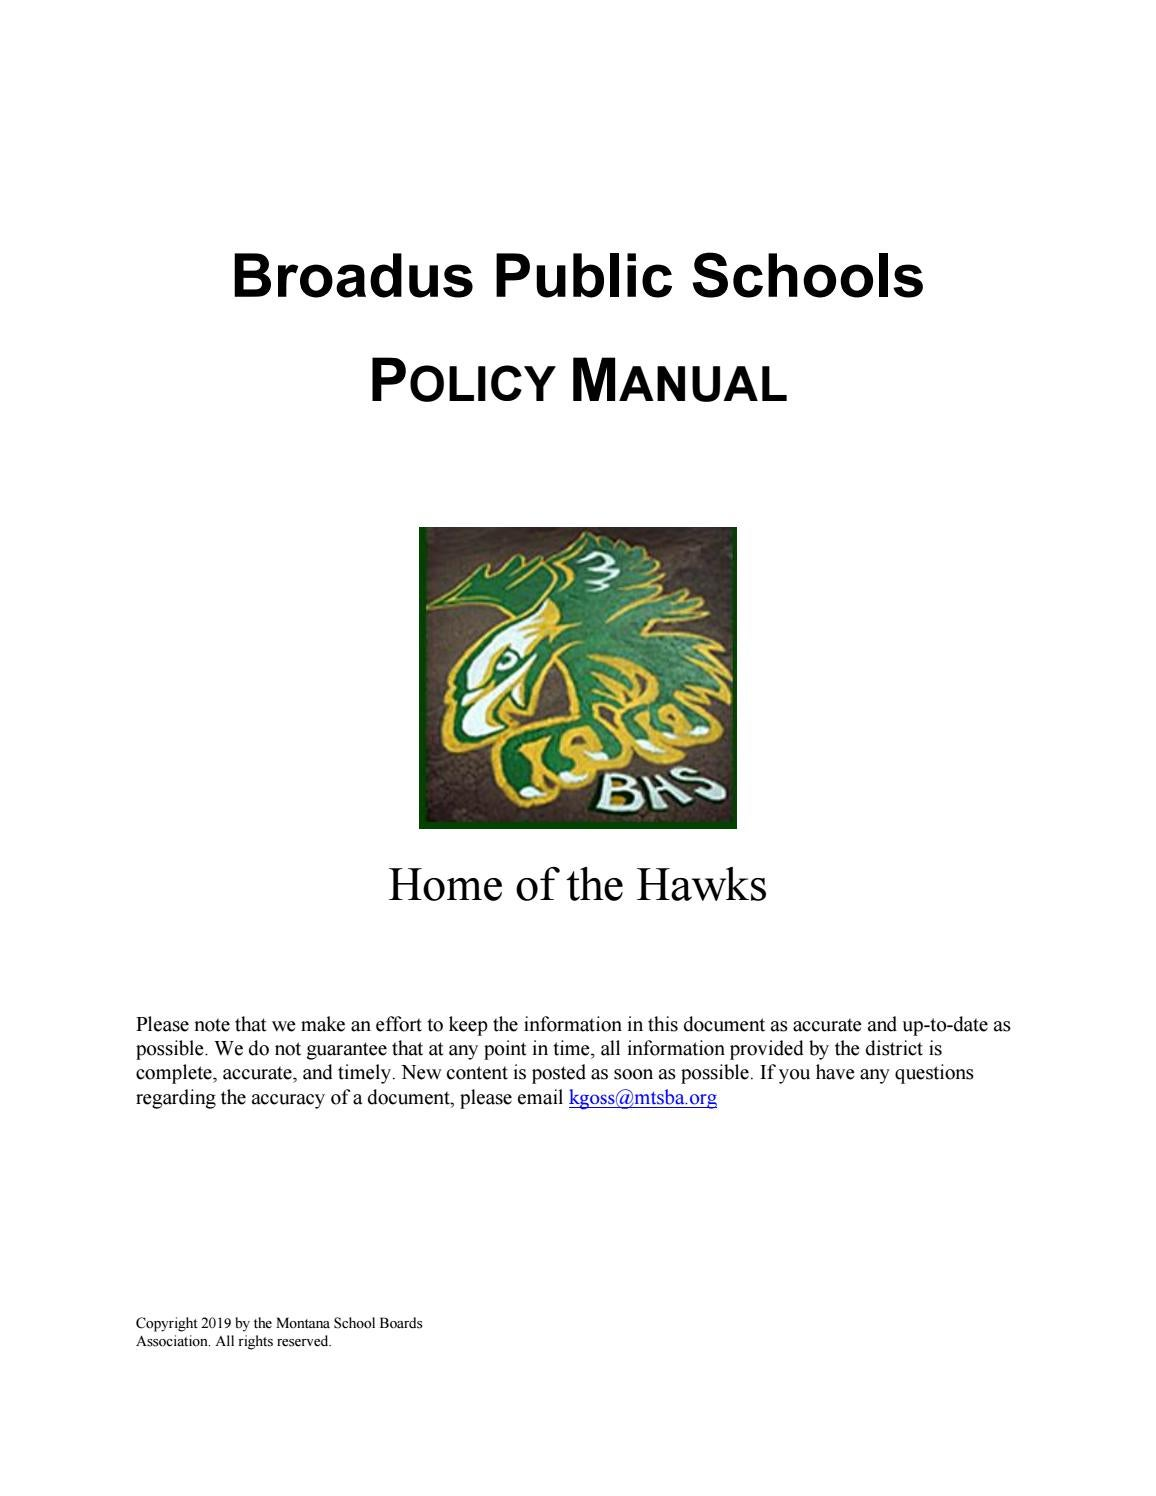 Broadus Public Schools Policy Manual by Montana School